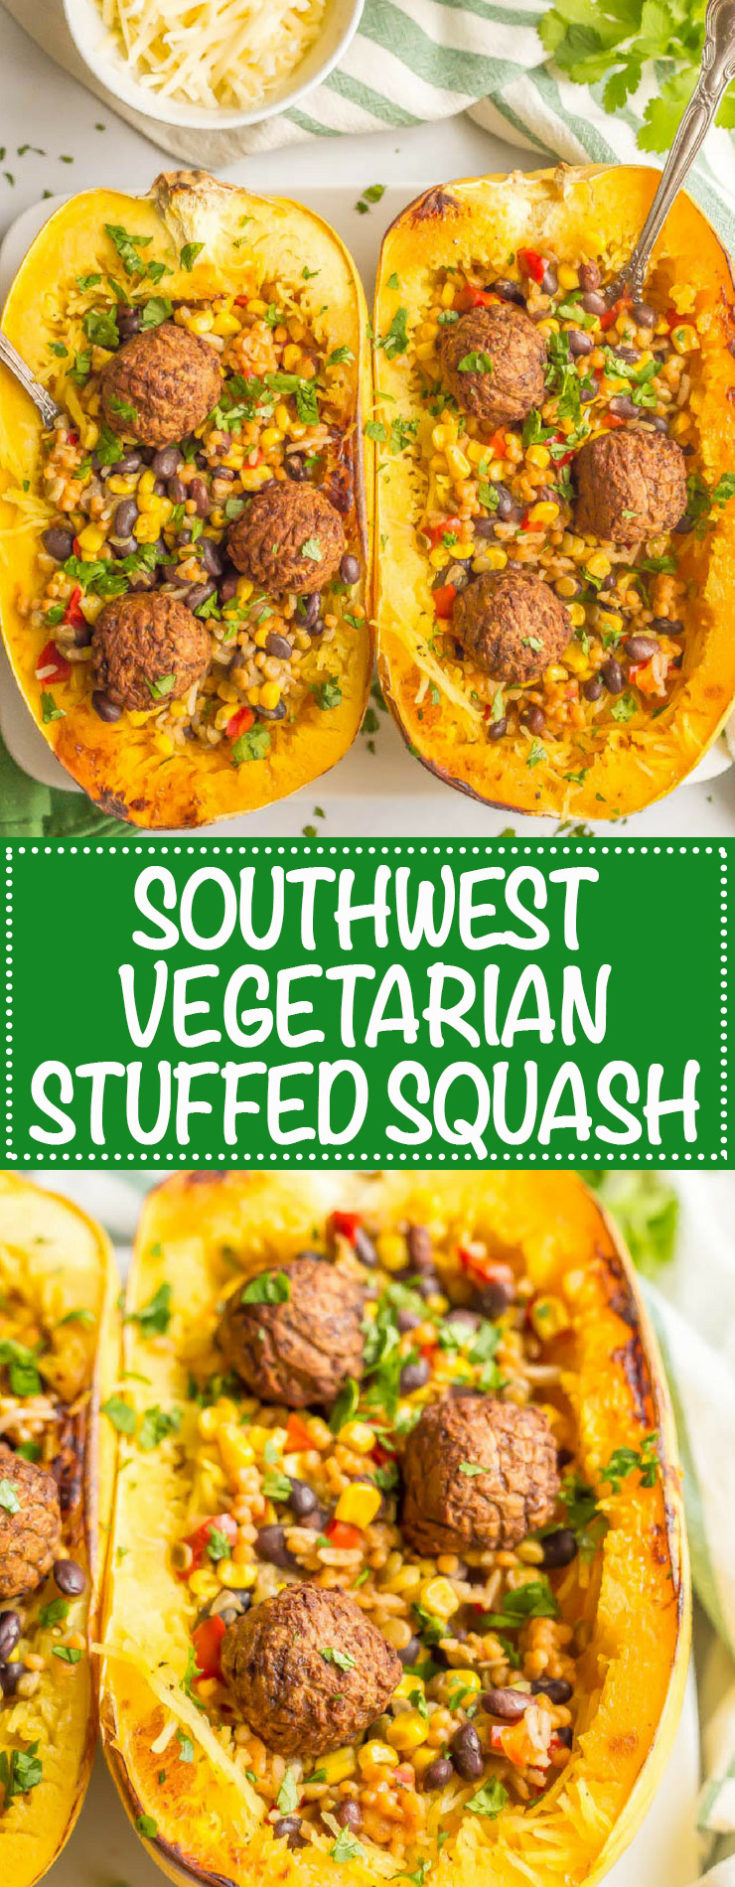 Southwest vegetarian stuffed spaghetti squash is a hearty and satisfying plant-based recipe with great flavor and textures.